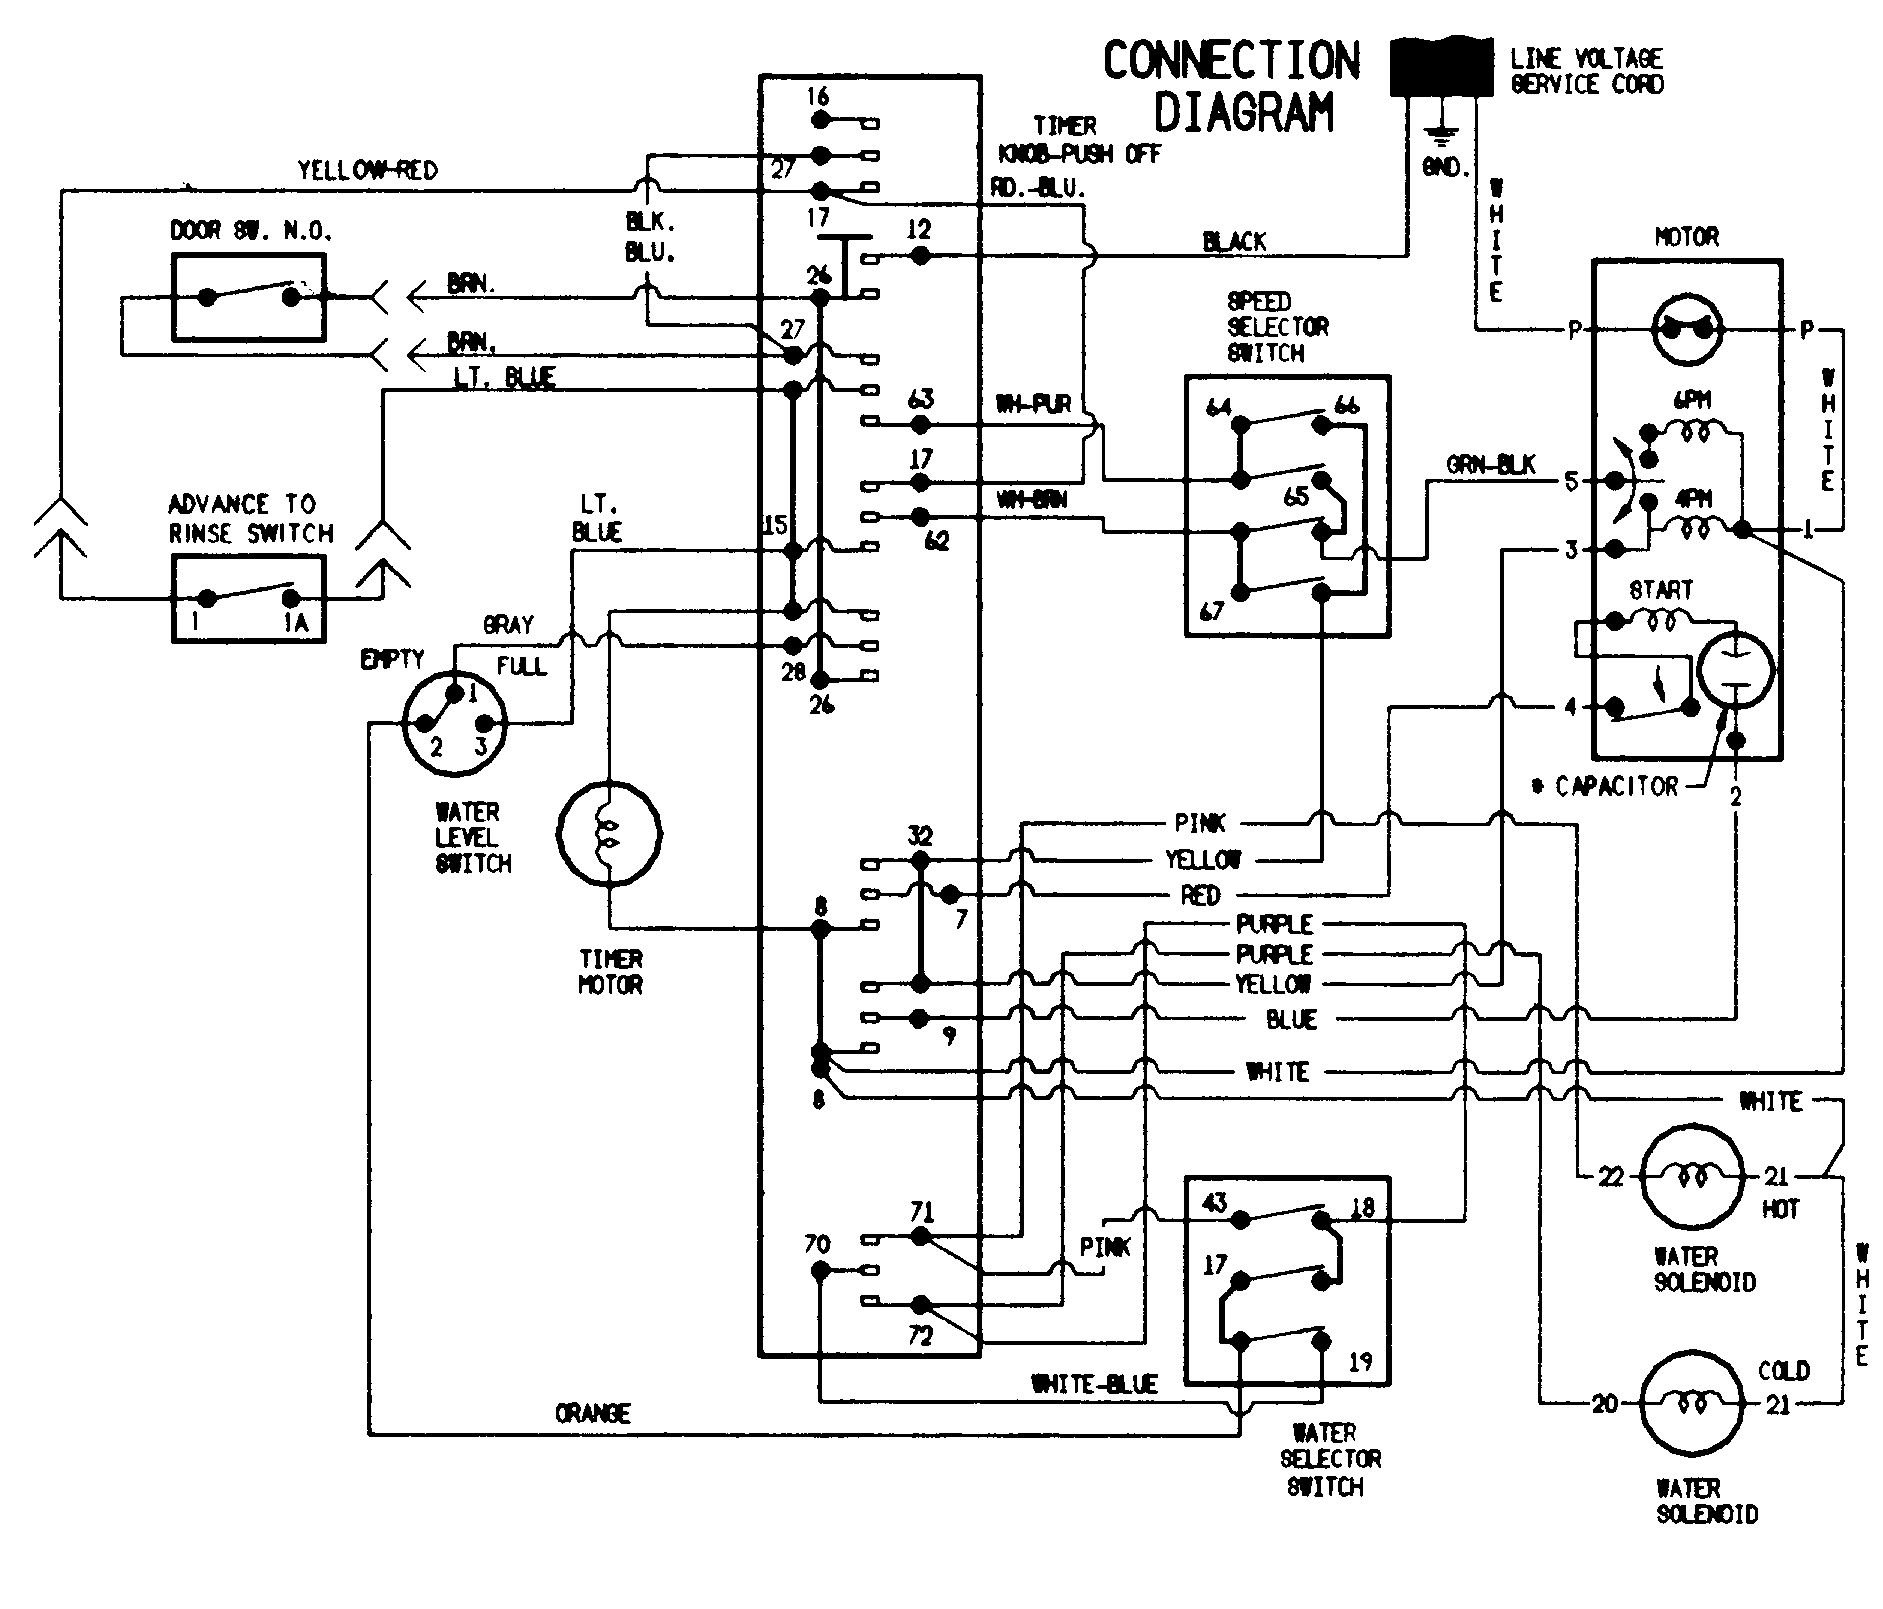 whirlpool washing machine motor wiring diagram with Appliance on Washer Machine Wiring Diagrams likewise 2 together with 105 Kitchen Aid Washer Will Not Agitate furthermore Index furthermore Washing Machine Or Washer Dryer Is Not Spinning Draining How To Fix.